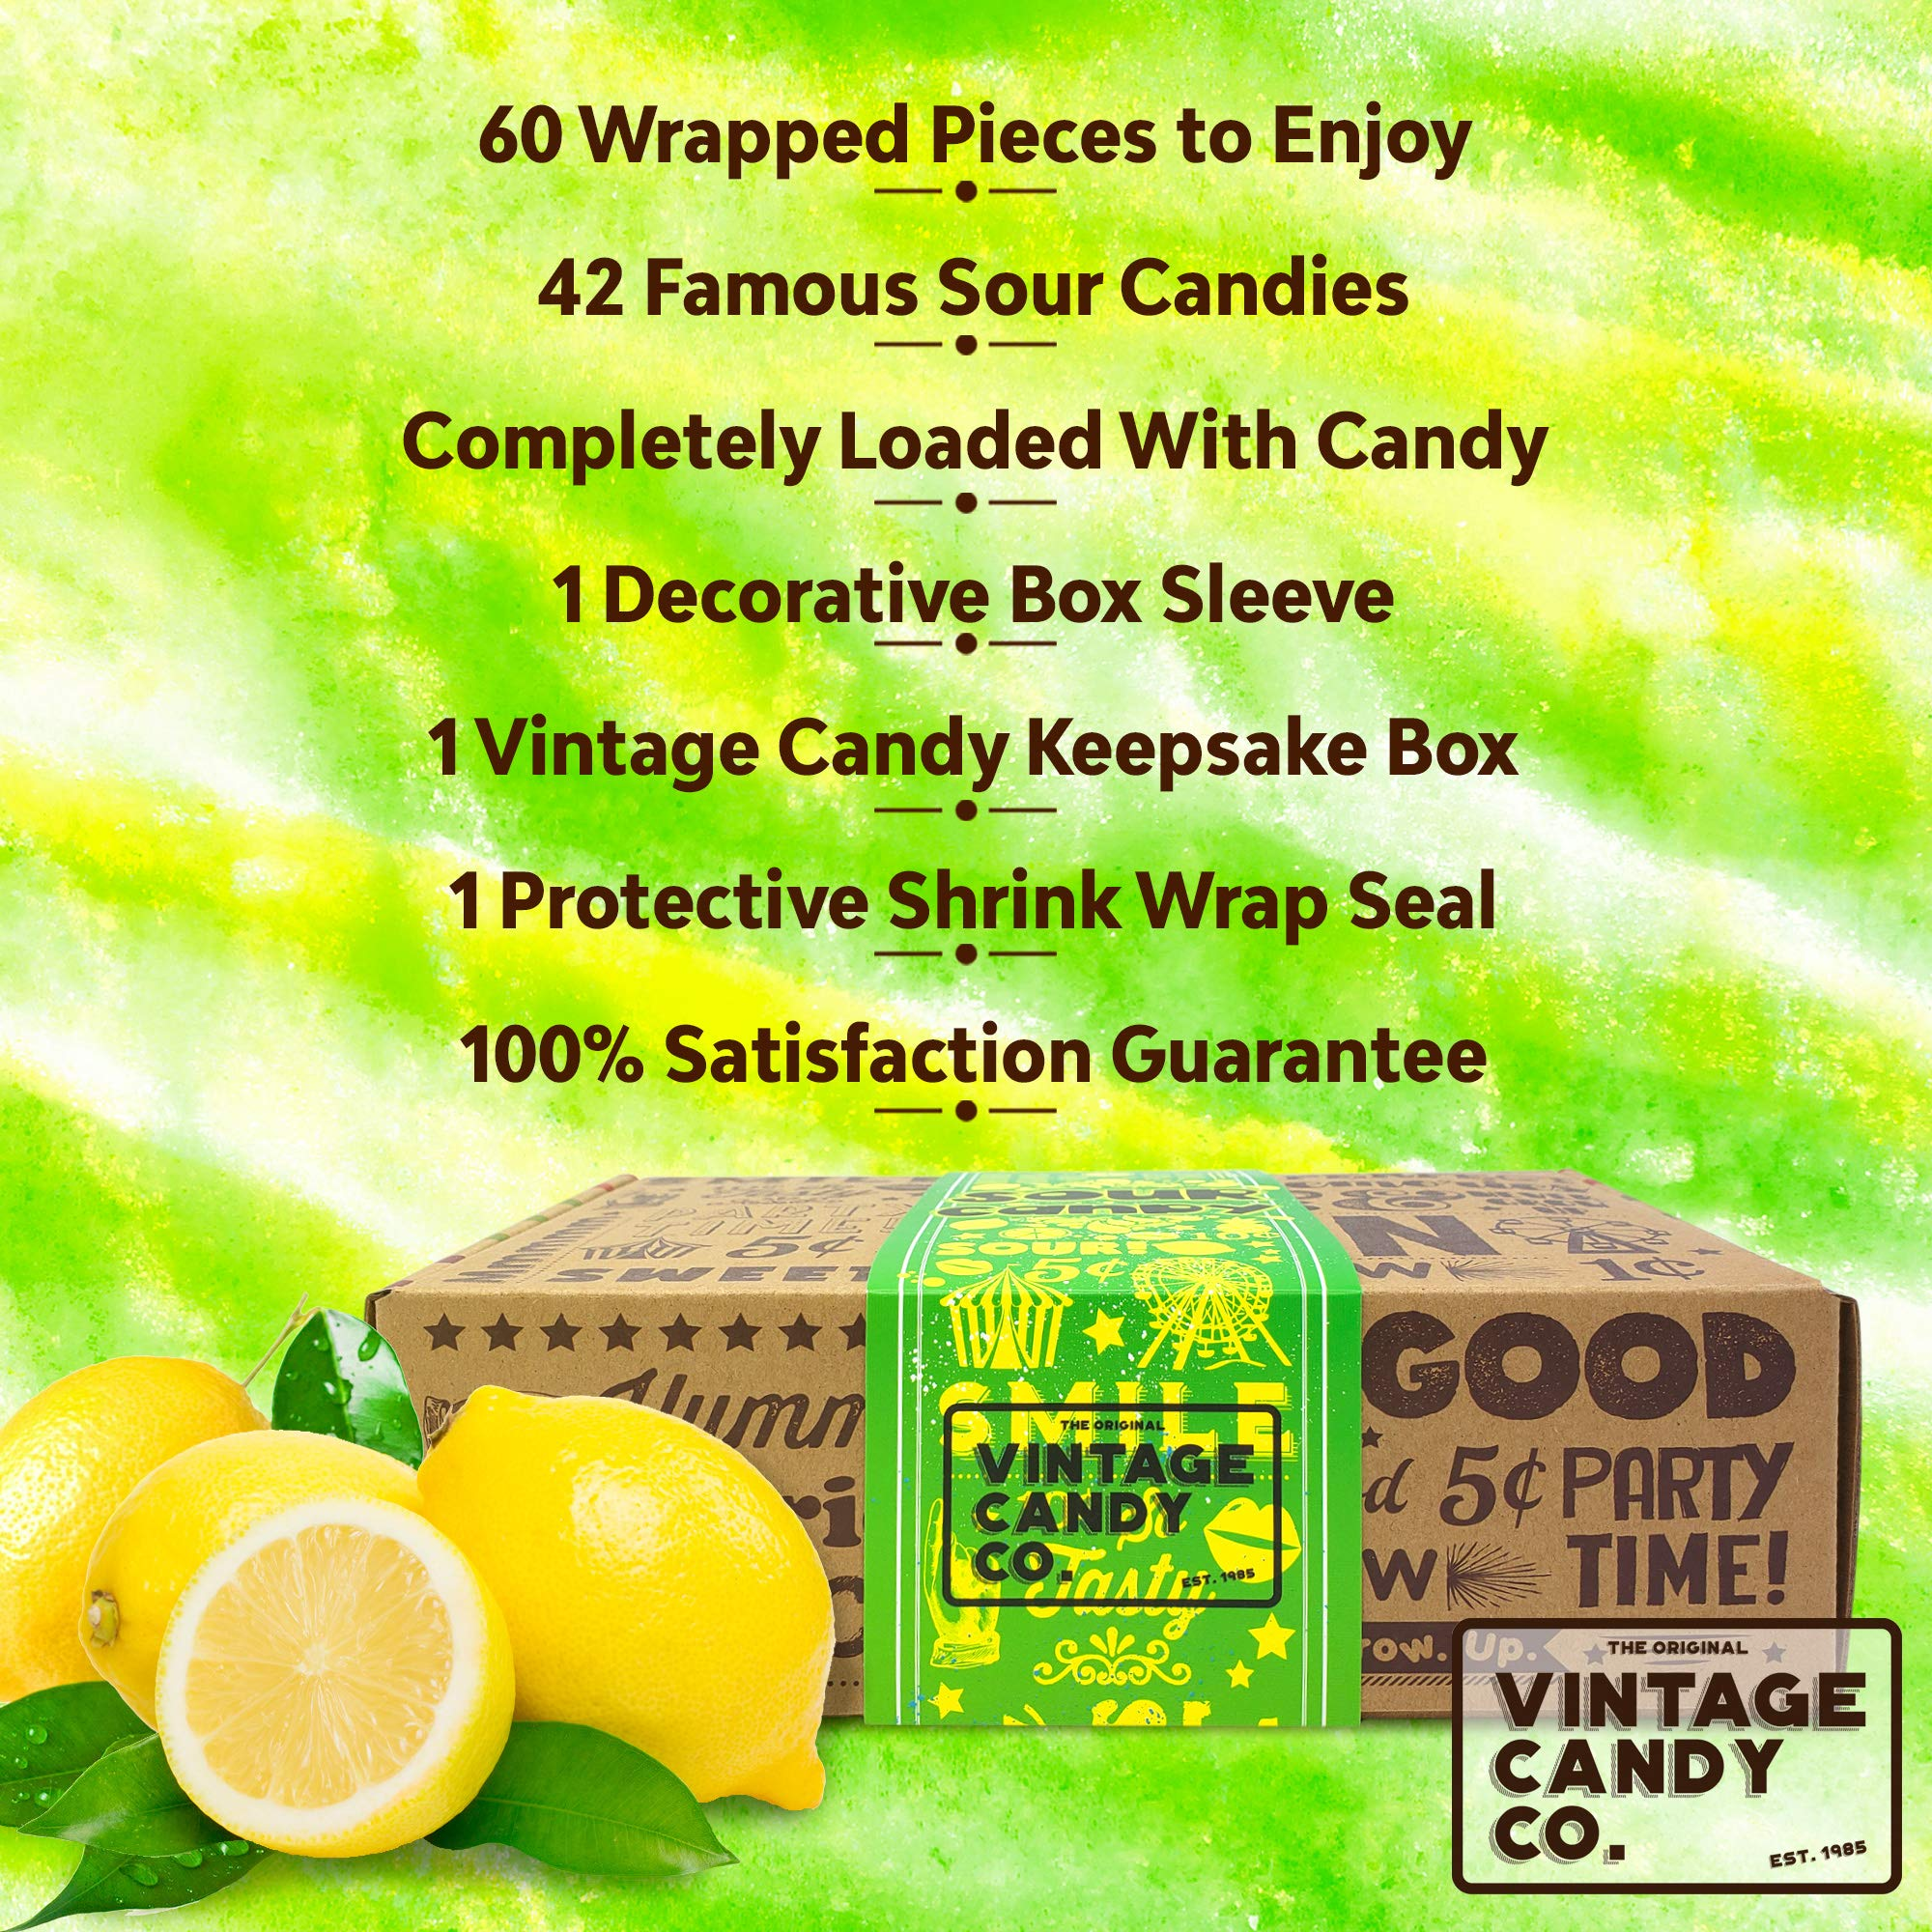 VINTAGE CANDY CO. SOUR CANDY ASSORTMENT GIFT BOX - Best Candy Variety Mix Care Package - Unique & Fun Gag Gift Basket - PERFECT For Man Or Woman Who LOVES SOUR Candy by Vintage Candy Co. (Image #3)